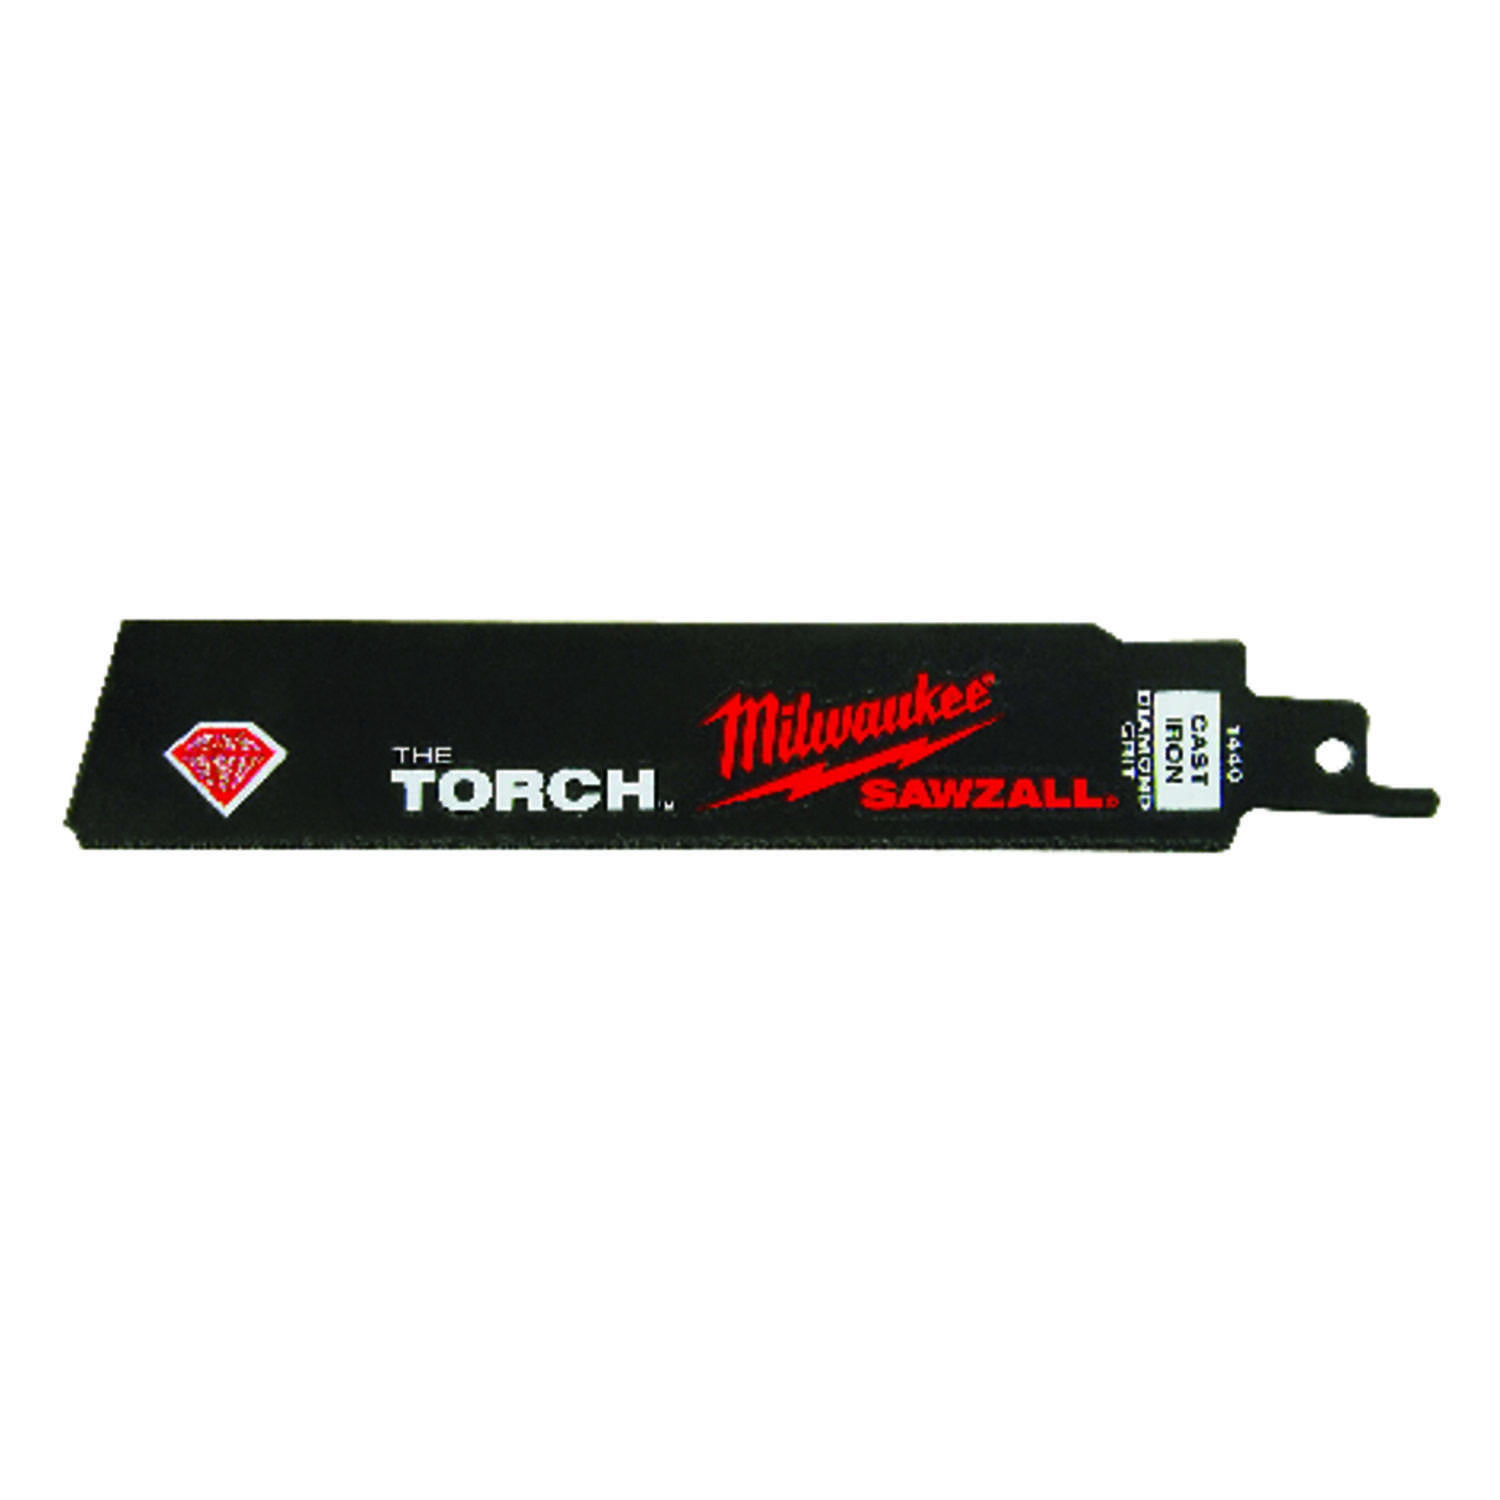 Milwaukee The Torch 6 in. Diamond Grit Reciprocating Saw Blade 1 pk